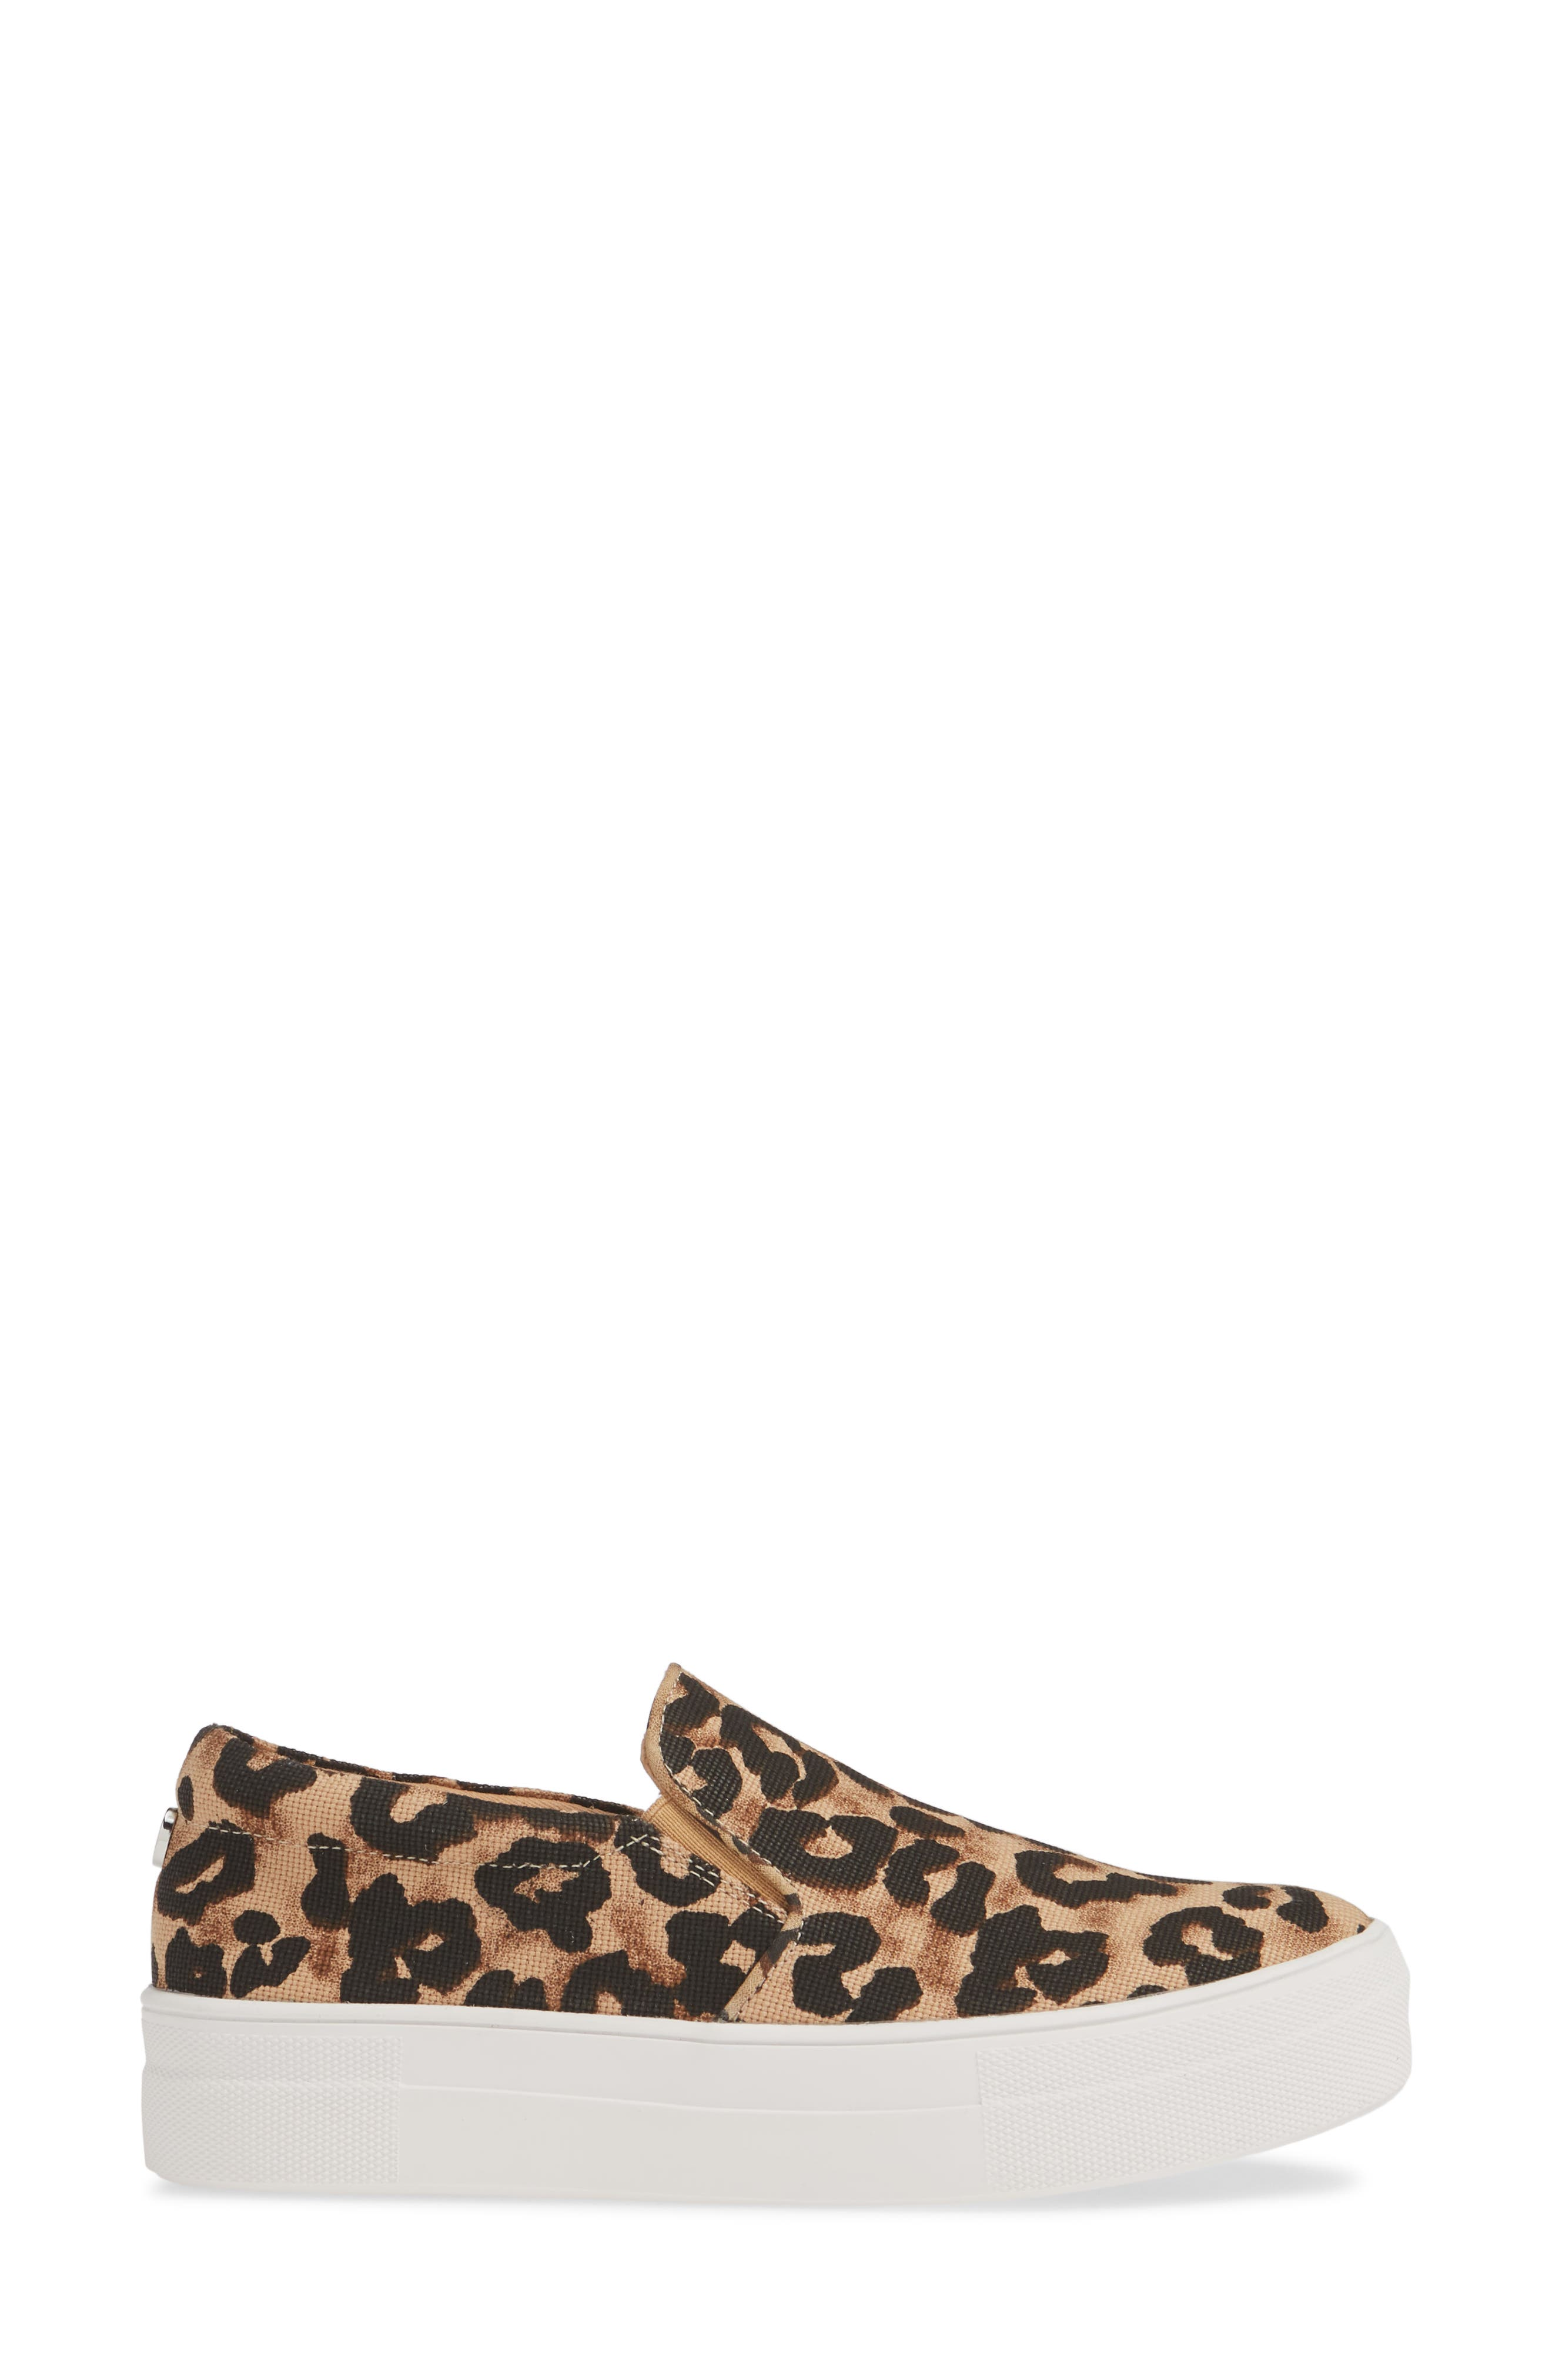 STEVE MADDEN,                             Gills Platform Slip-On Sneaker,                             Alternate thumbnail 3, color,                             LEOPARD PRINT